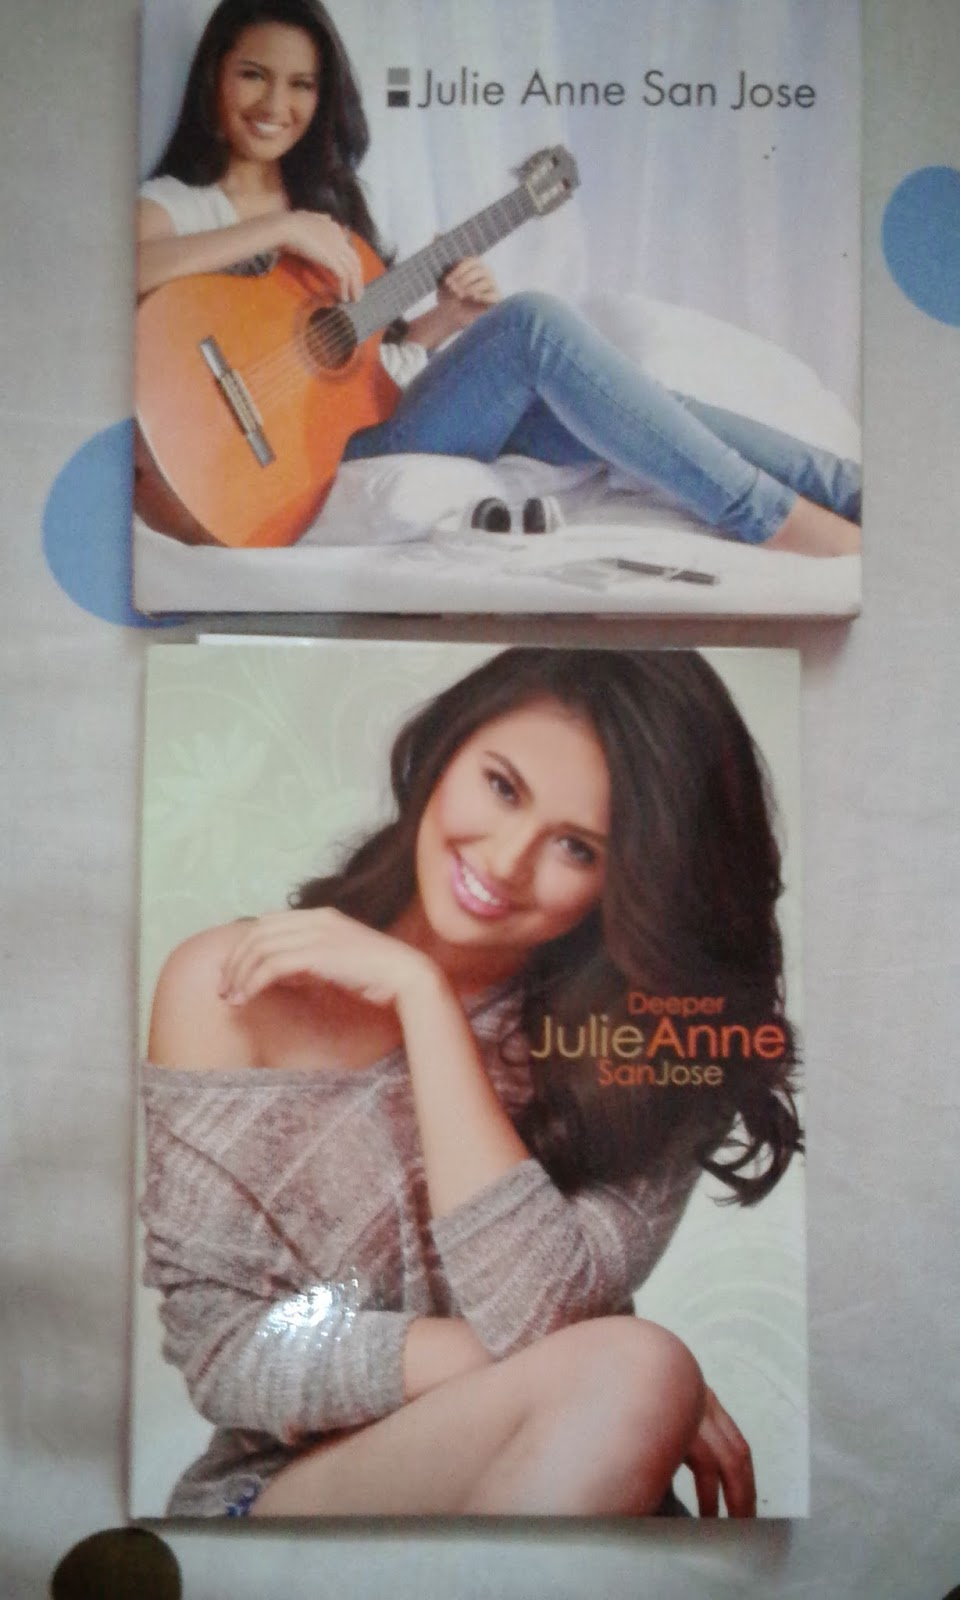 front covers of Julie Anne San Jose and Deeper albums